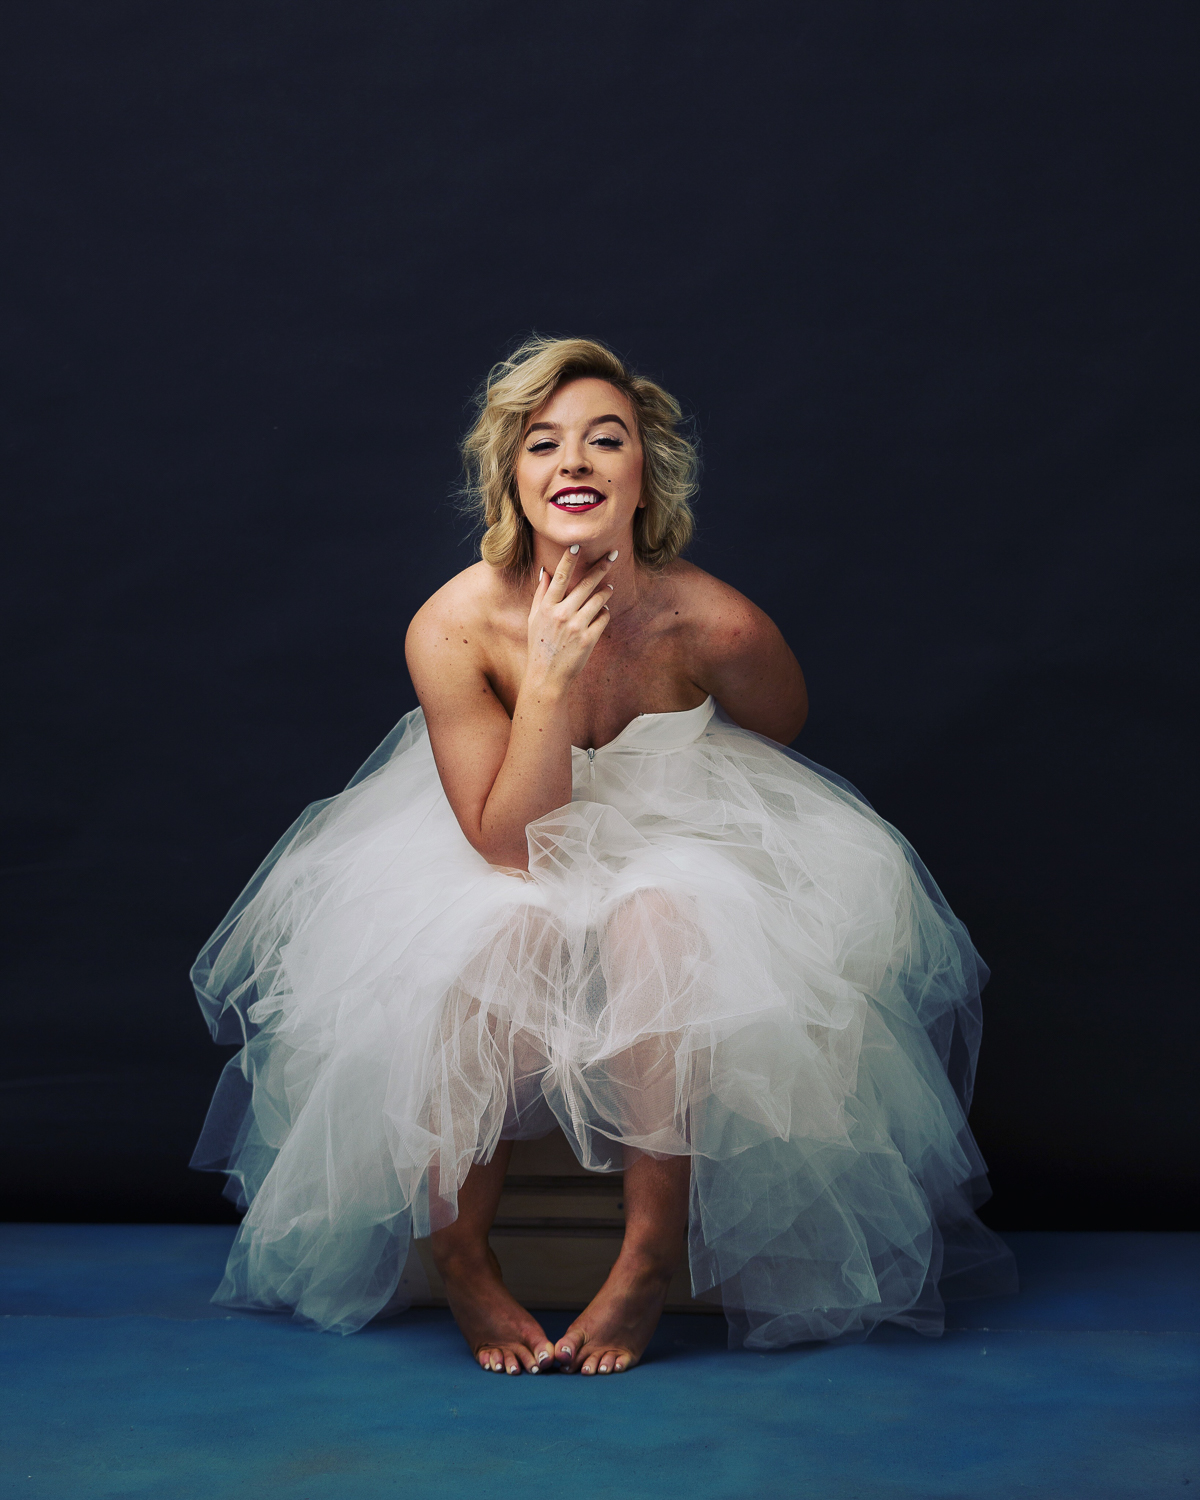 Kara Ricks as Marilyn Monroe